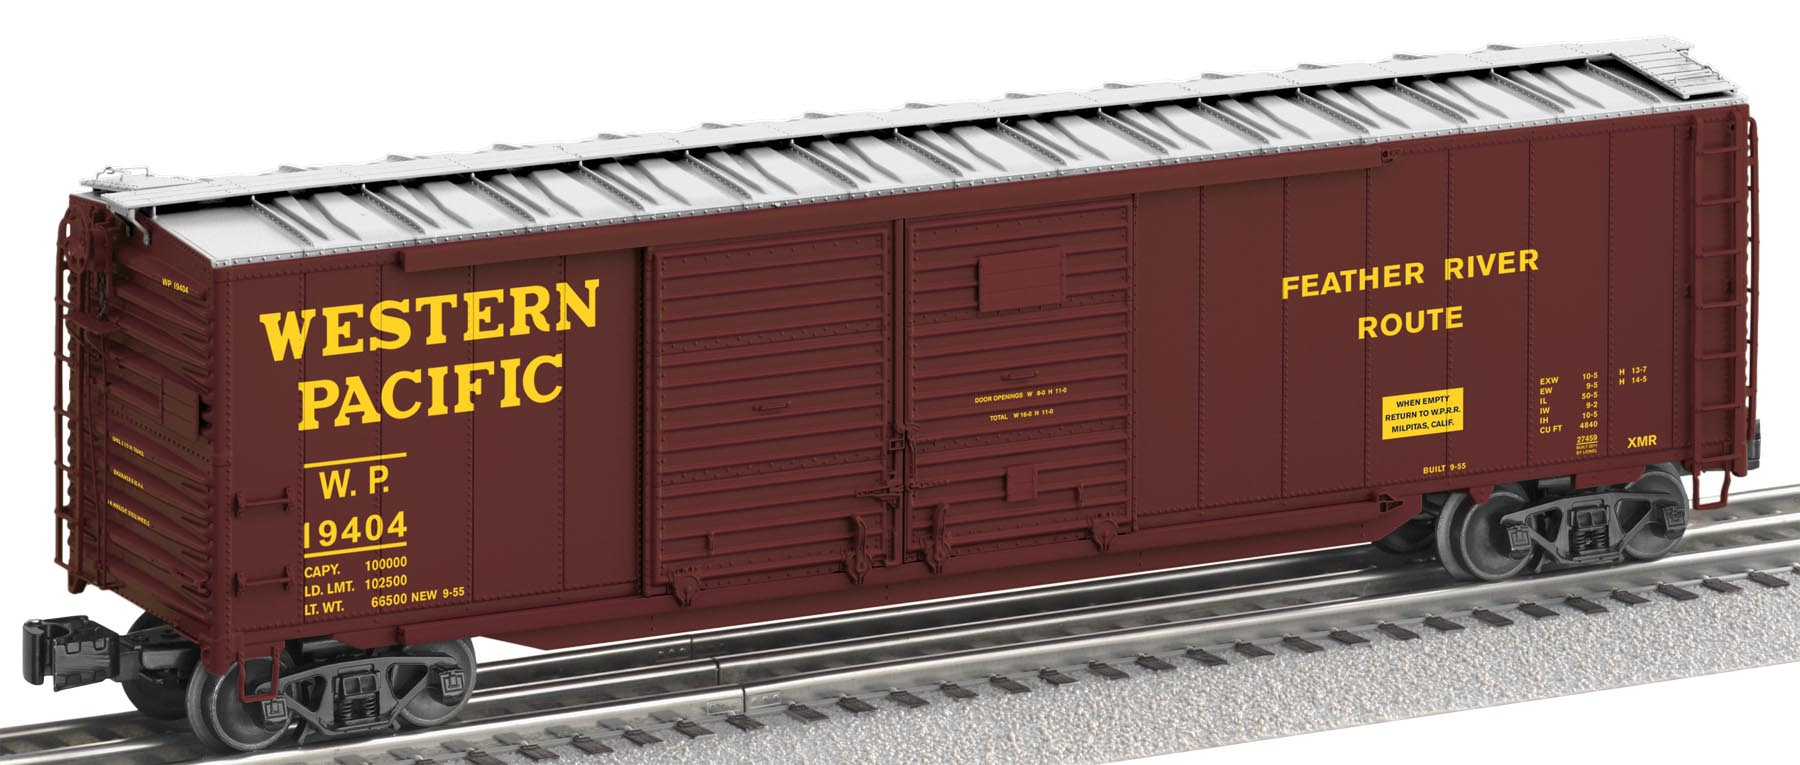 6-27459 WESTERN PACIFIC A.A.R. STANDARD BOXCAR #19404